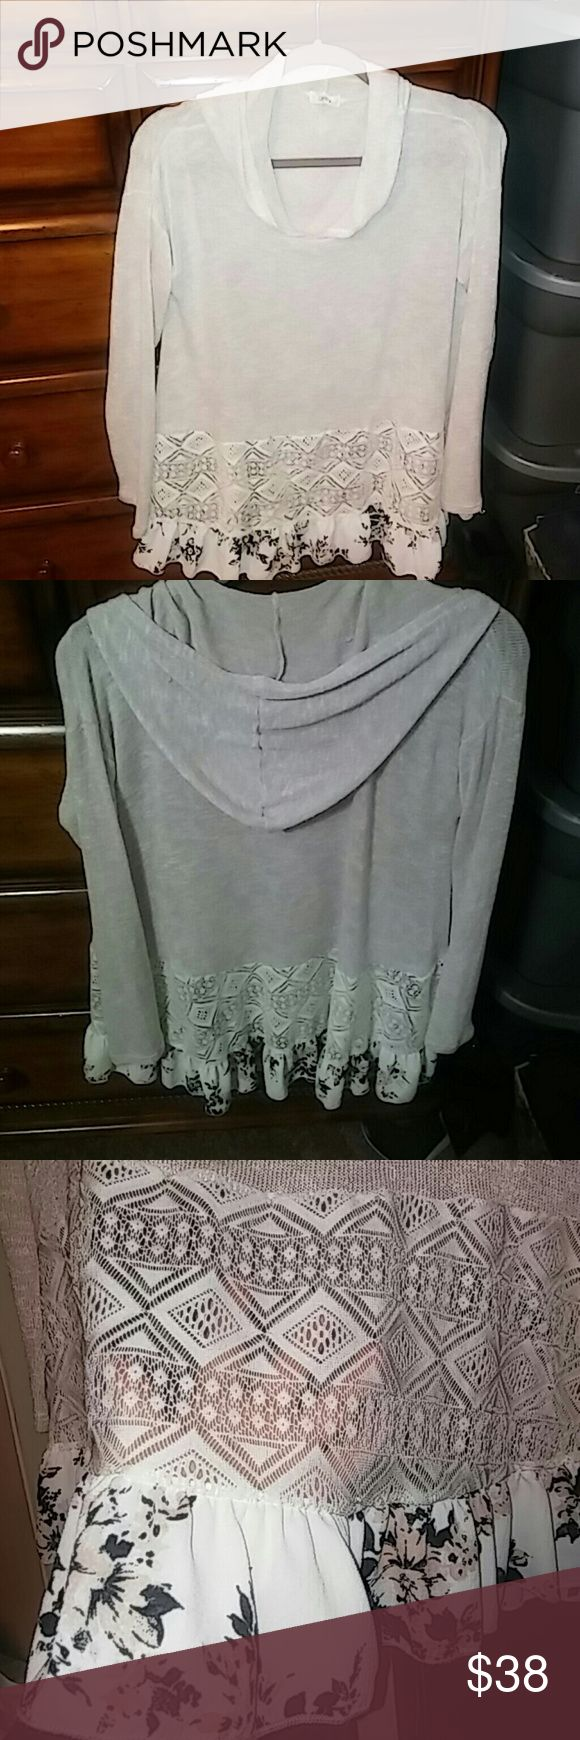 Boutique hooded sweater with lace & chiffon hem This is such an adorable tunic style sweater that is super soft to the touch and feels so good on. Looks best with leggings or jeans. It's thin so hot should wear a cami or tank under it but lays beautifully on the body. It's too long for me because I'm very short but if you want to wear as a dress with boots & tights if short it would look great just not my style so it's been hanging in the closet! Colors are black & pale pink on bottom…